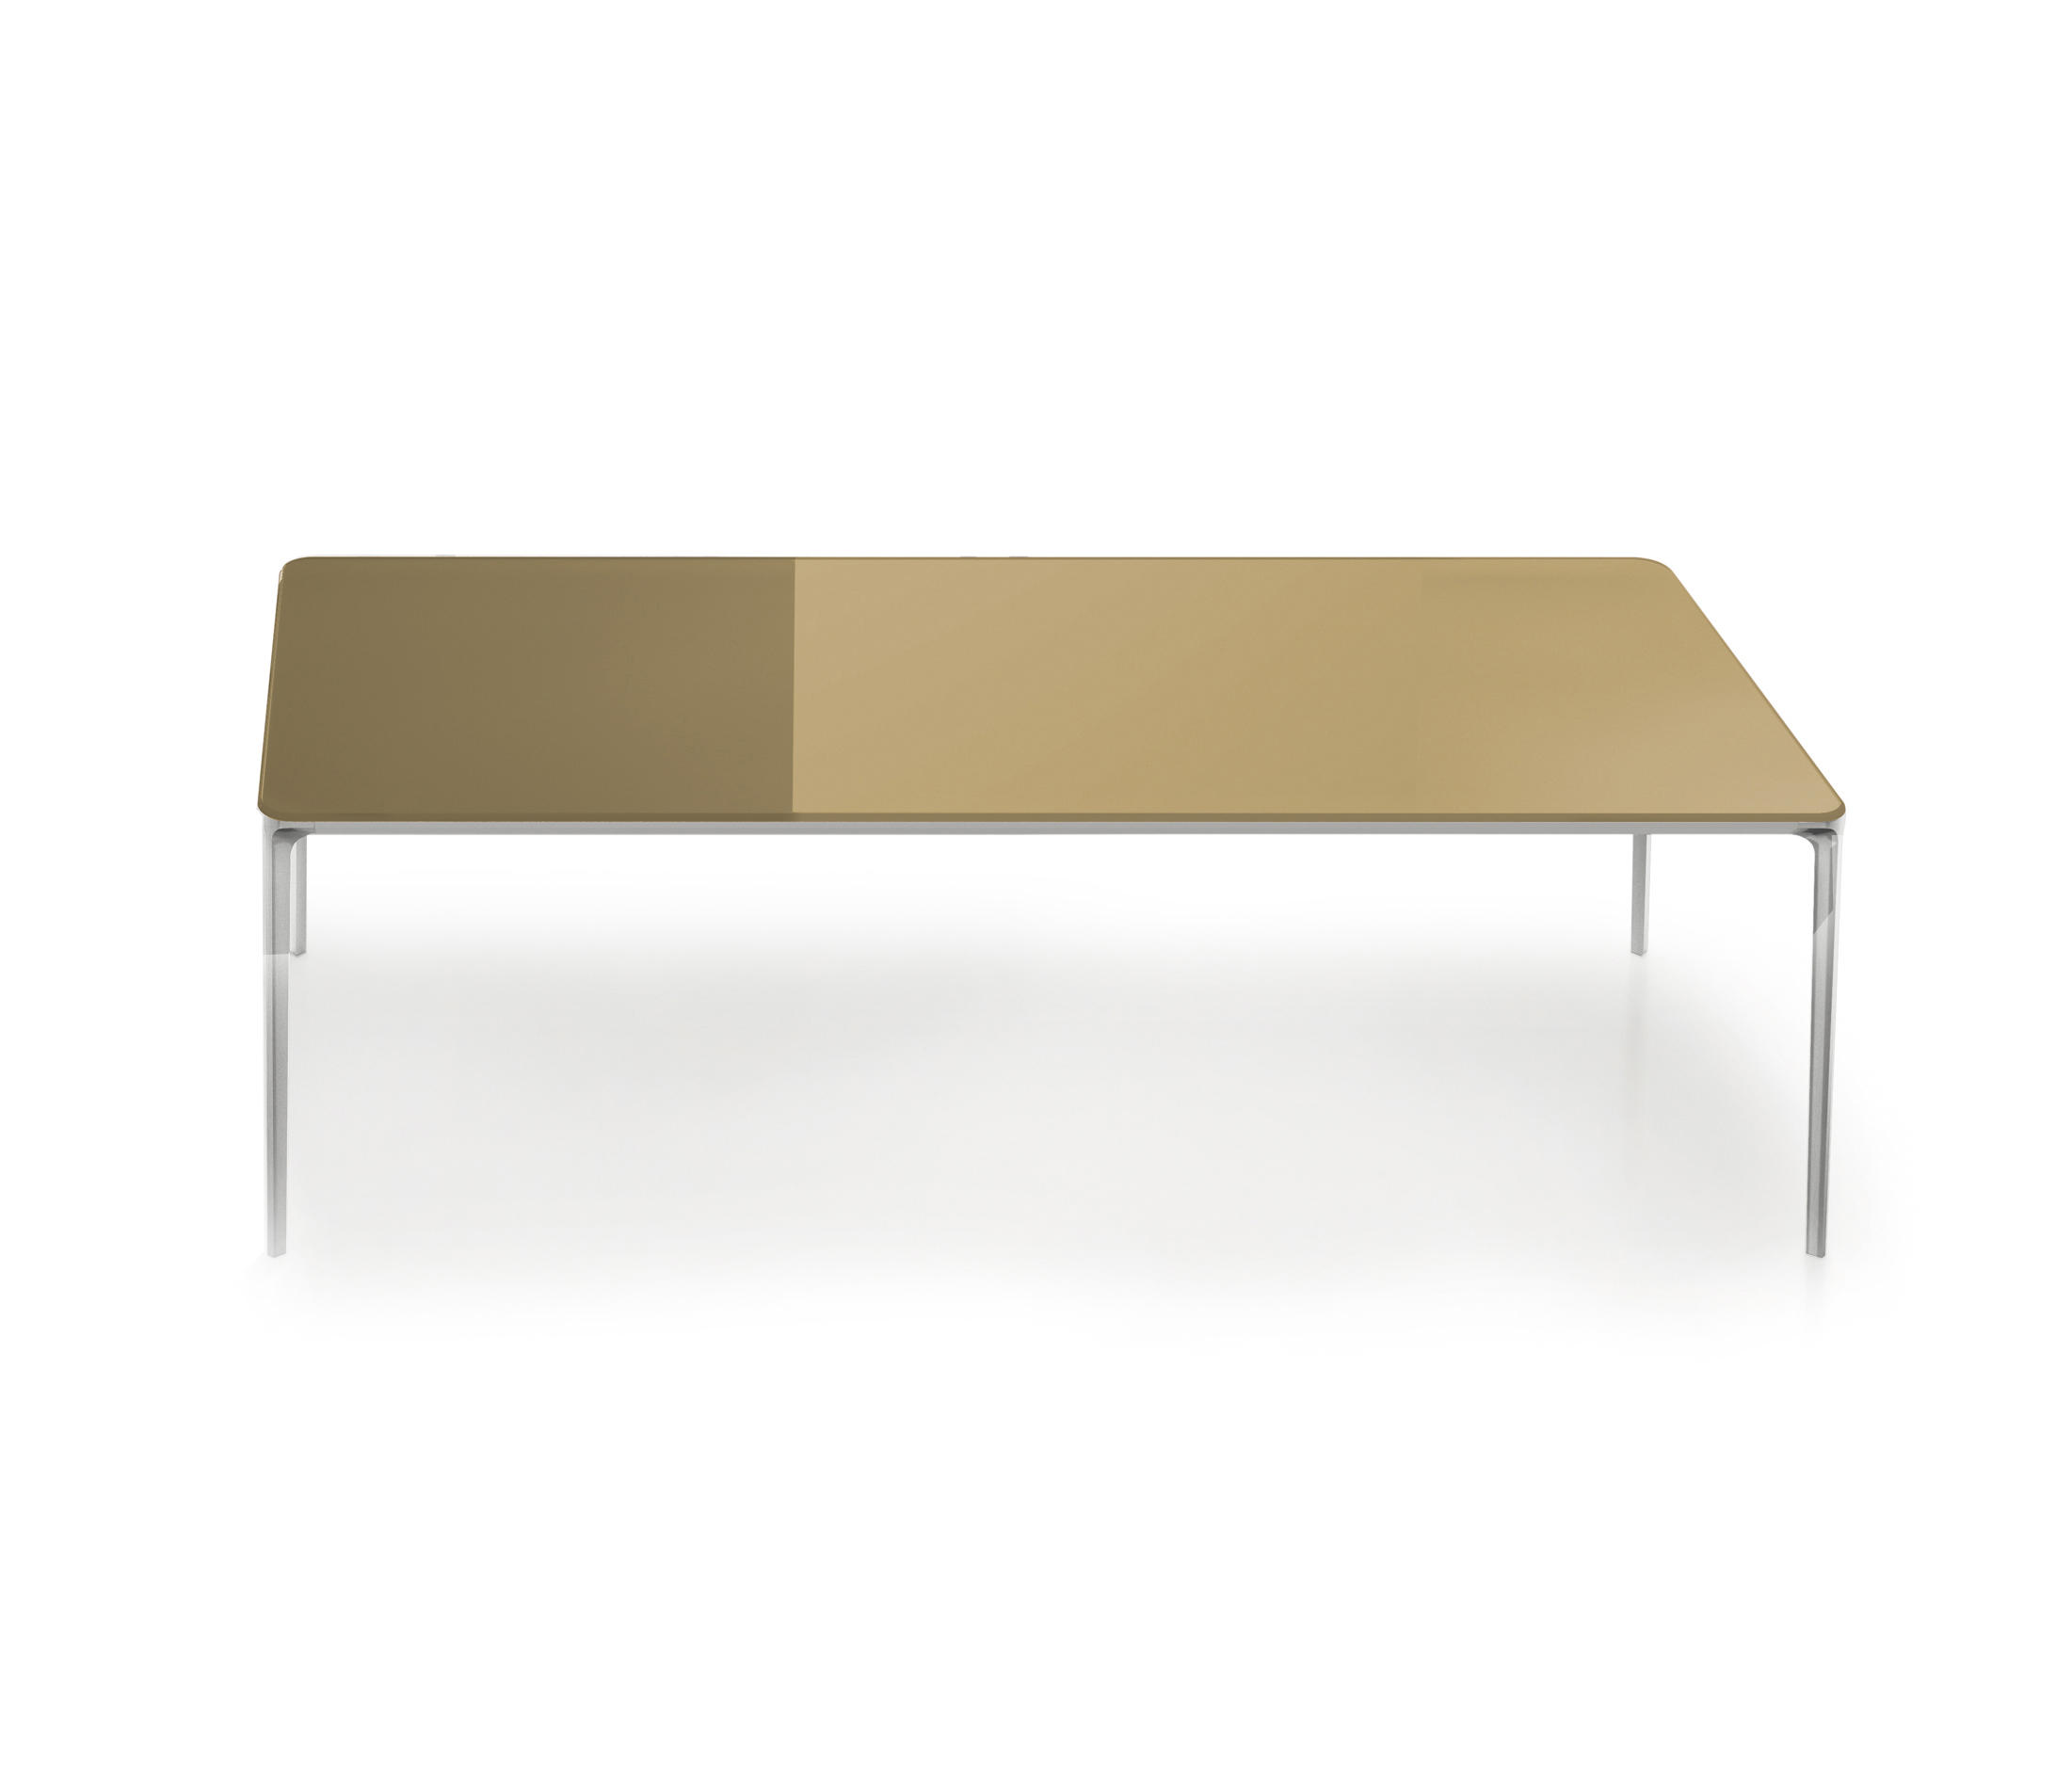 SLIM COFFEE TABLE H 46 RECTANGULAR Lounge tables from Sovet